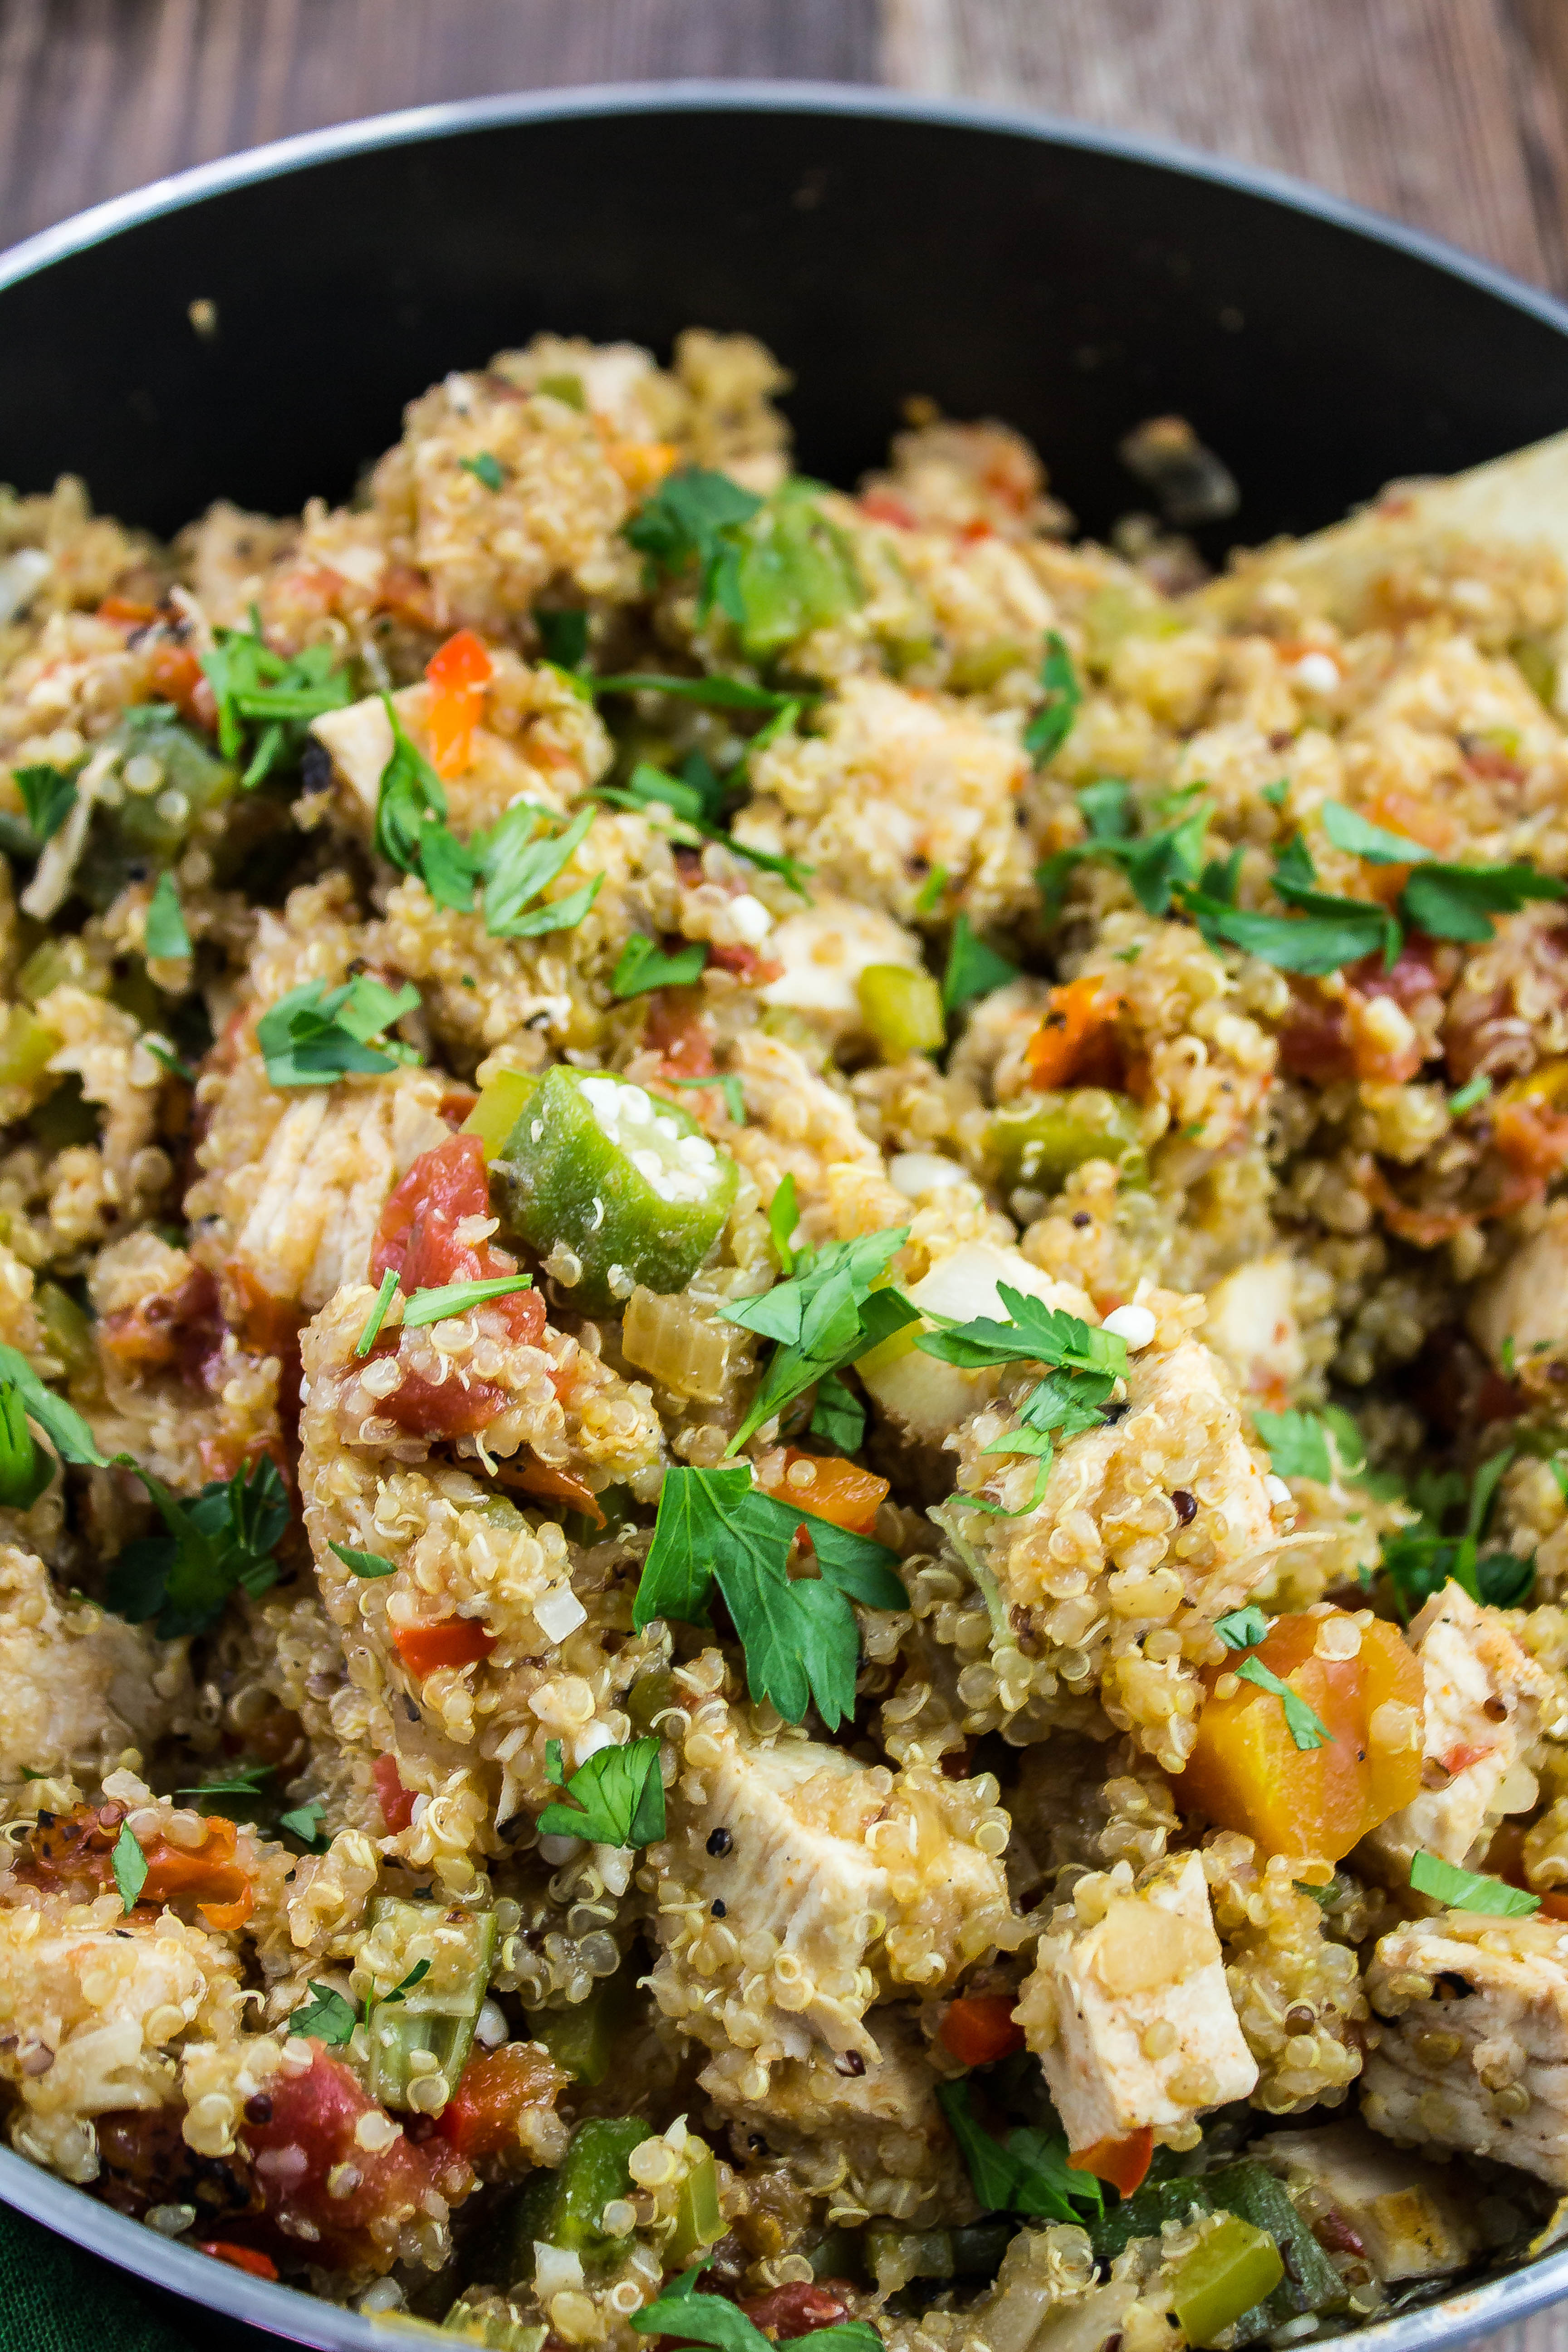 Cajun Turkey Quinoa Skillet is a blend of scrumptious Cajun flavors. Oven roasted turkey breast, quinoa, and vegetables cooked together make for a delicious dinner! Bold flavors that will keep you coming back for seconds! Weight Watchers friendly recipe!